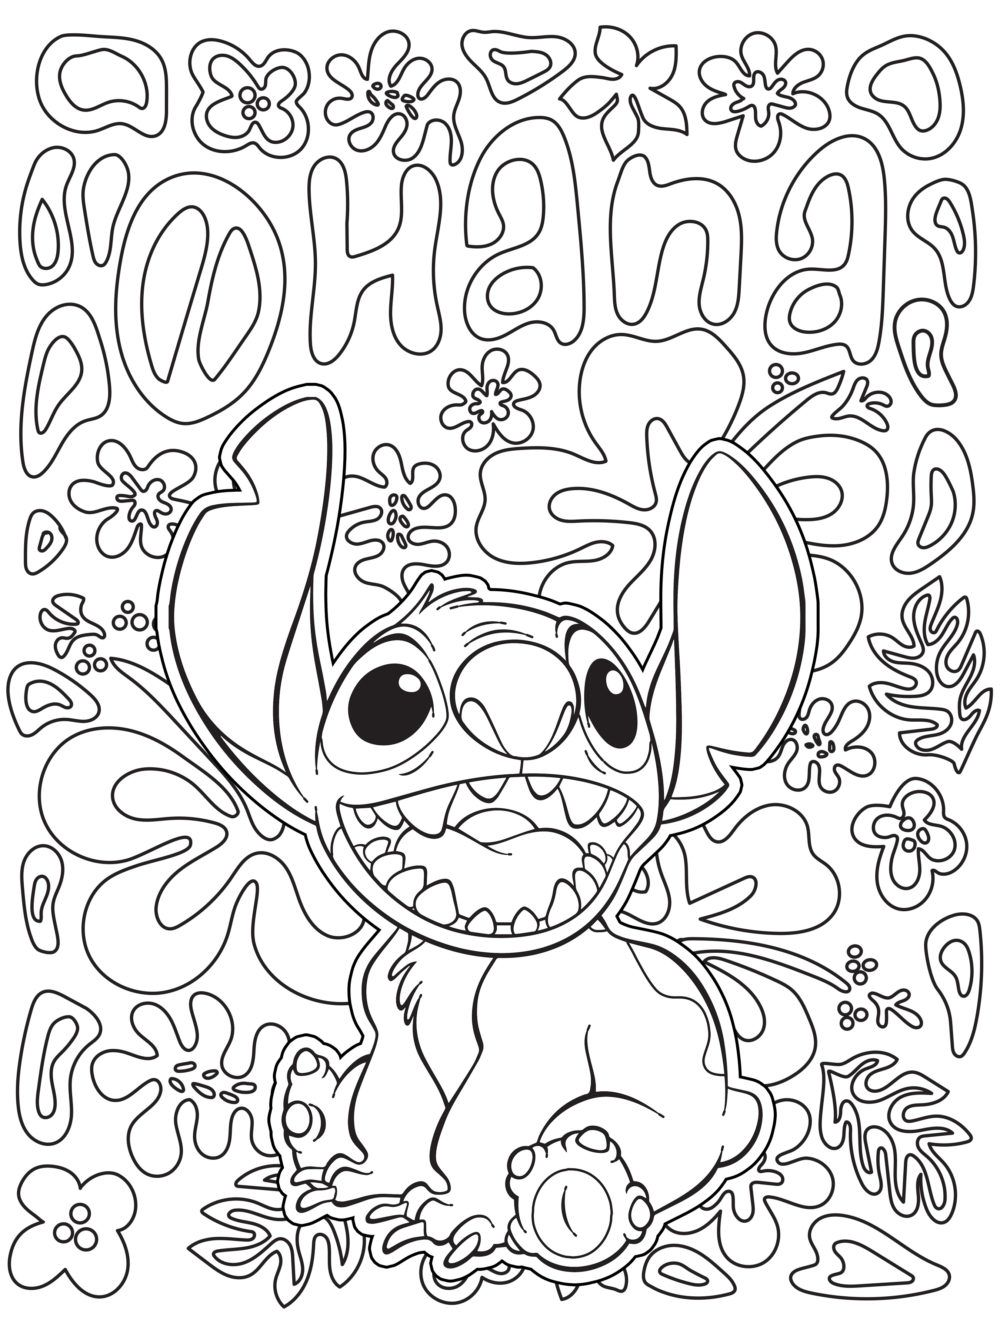 Celebrate National Coloring Book Day With | Cartoon Coloring